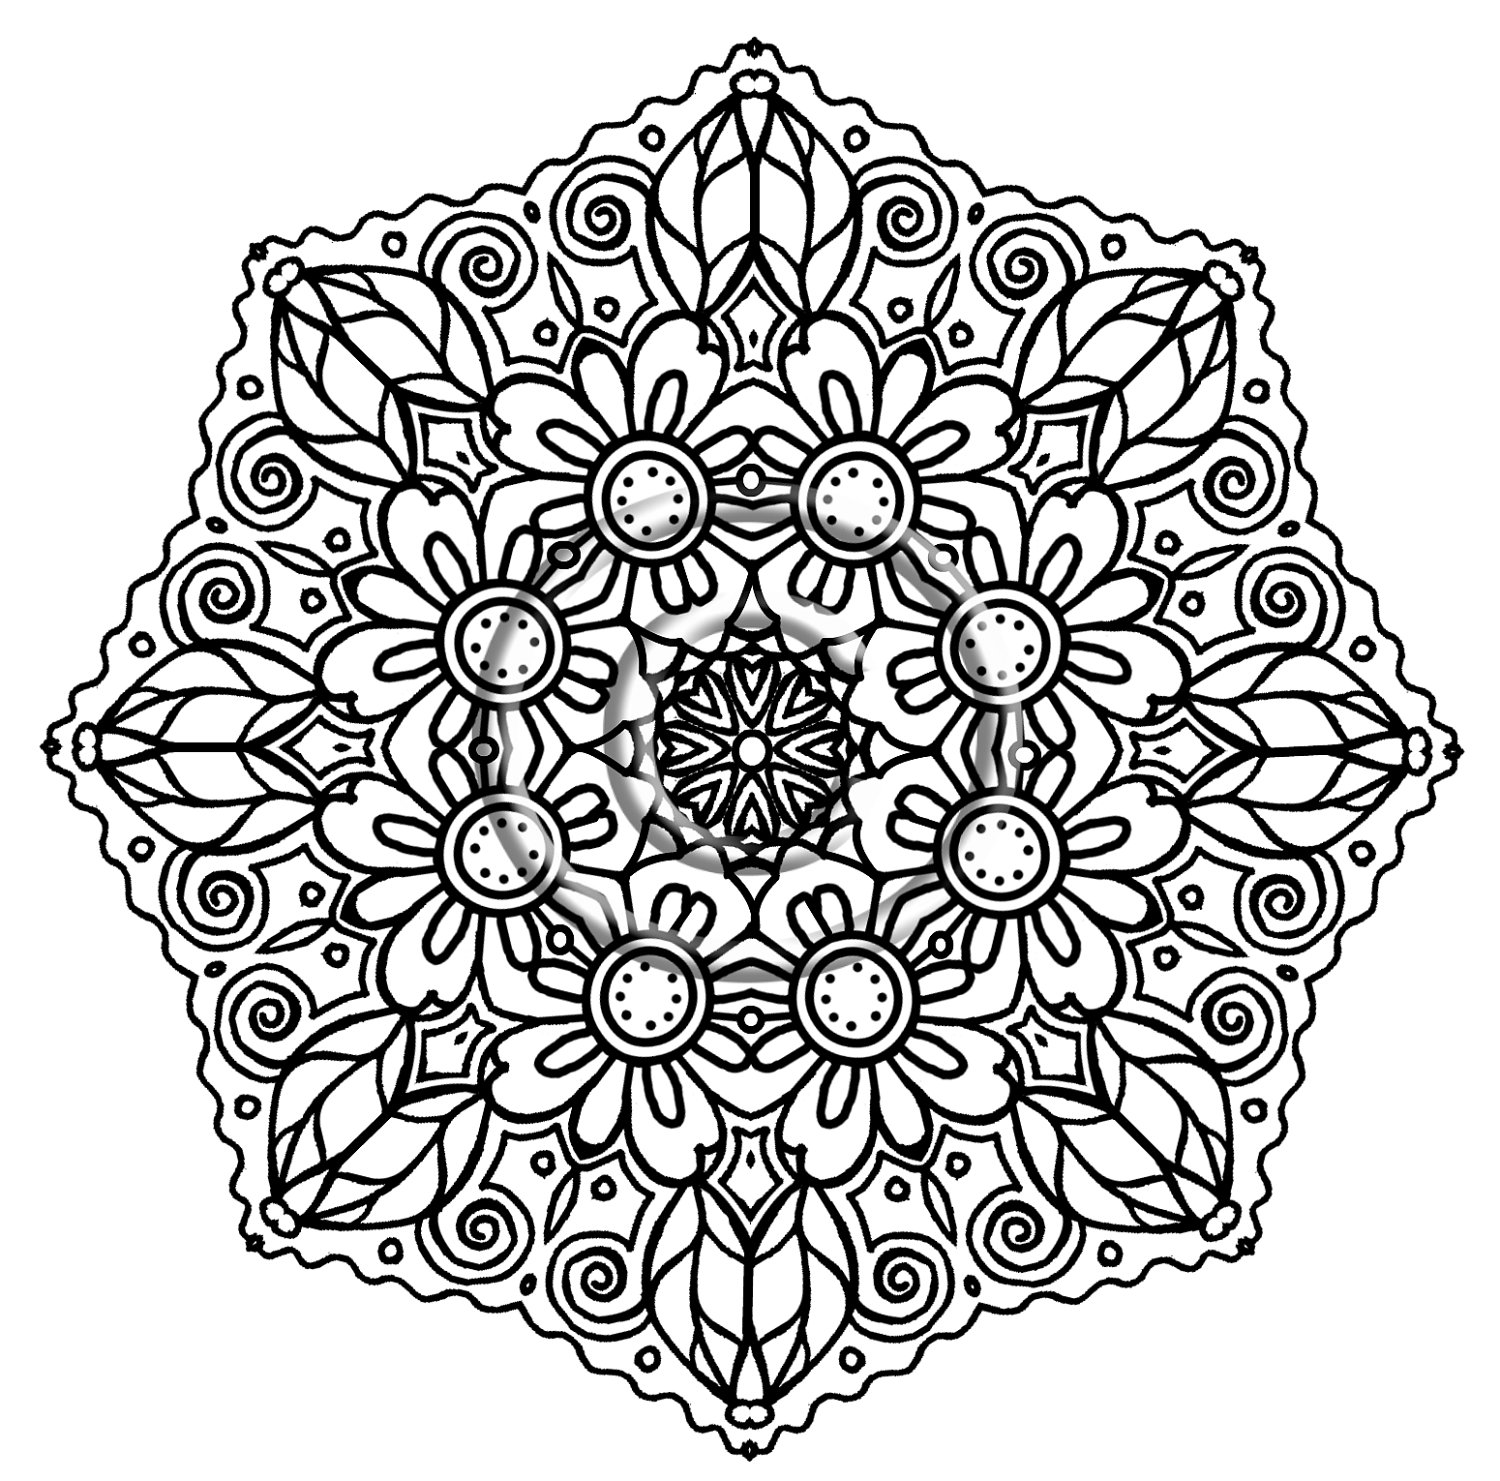 free printable coloring pages of flowers detailed flower coloring pages to download and print for free printable coloring of free pages flowers